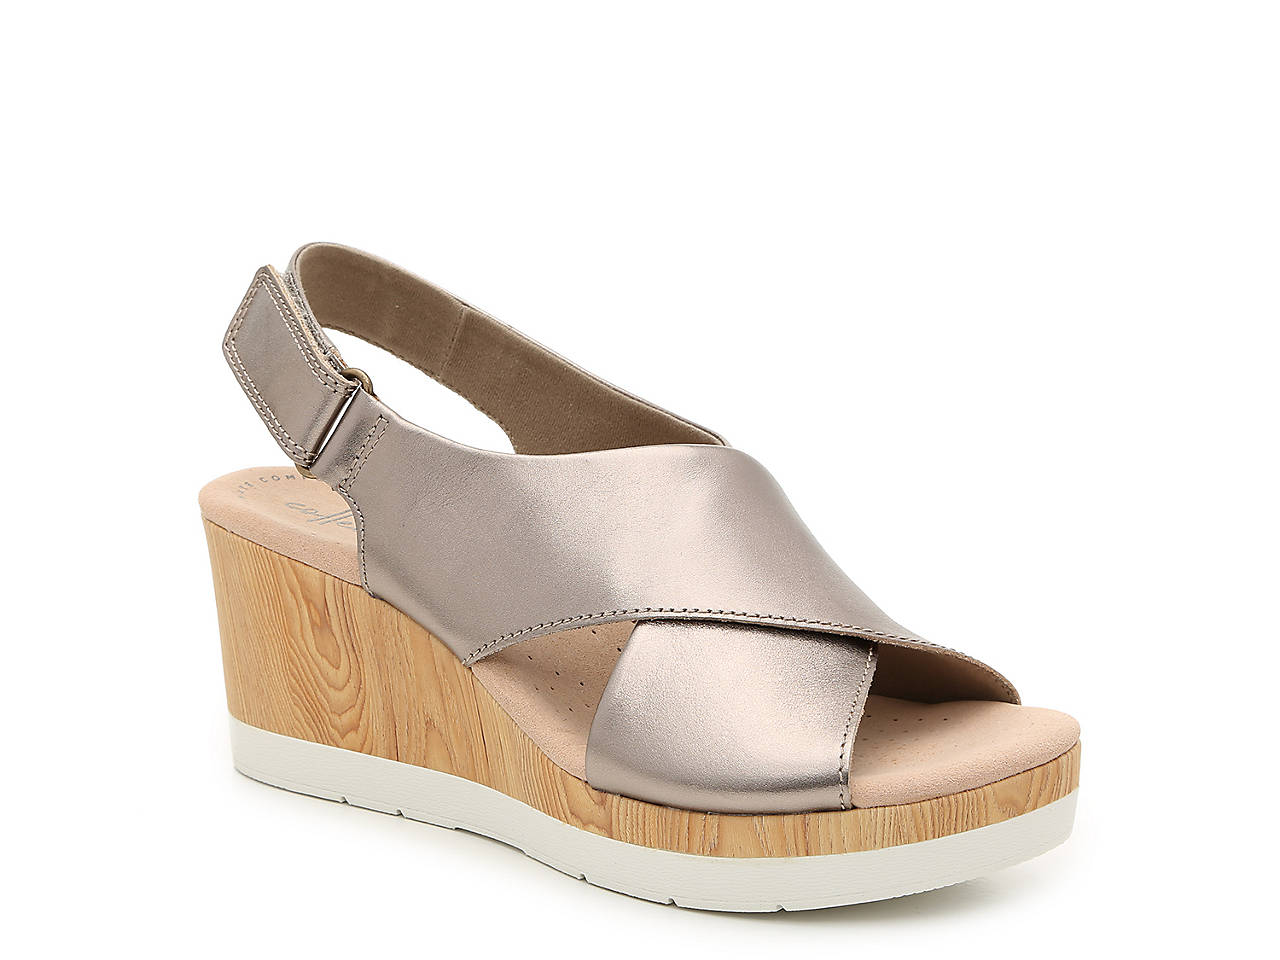 Clarks Cammy Pearl Wedge Sandal Women s Shoes